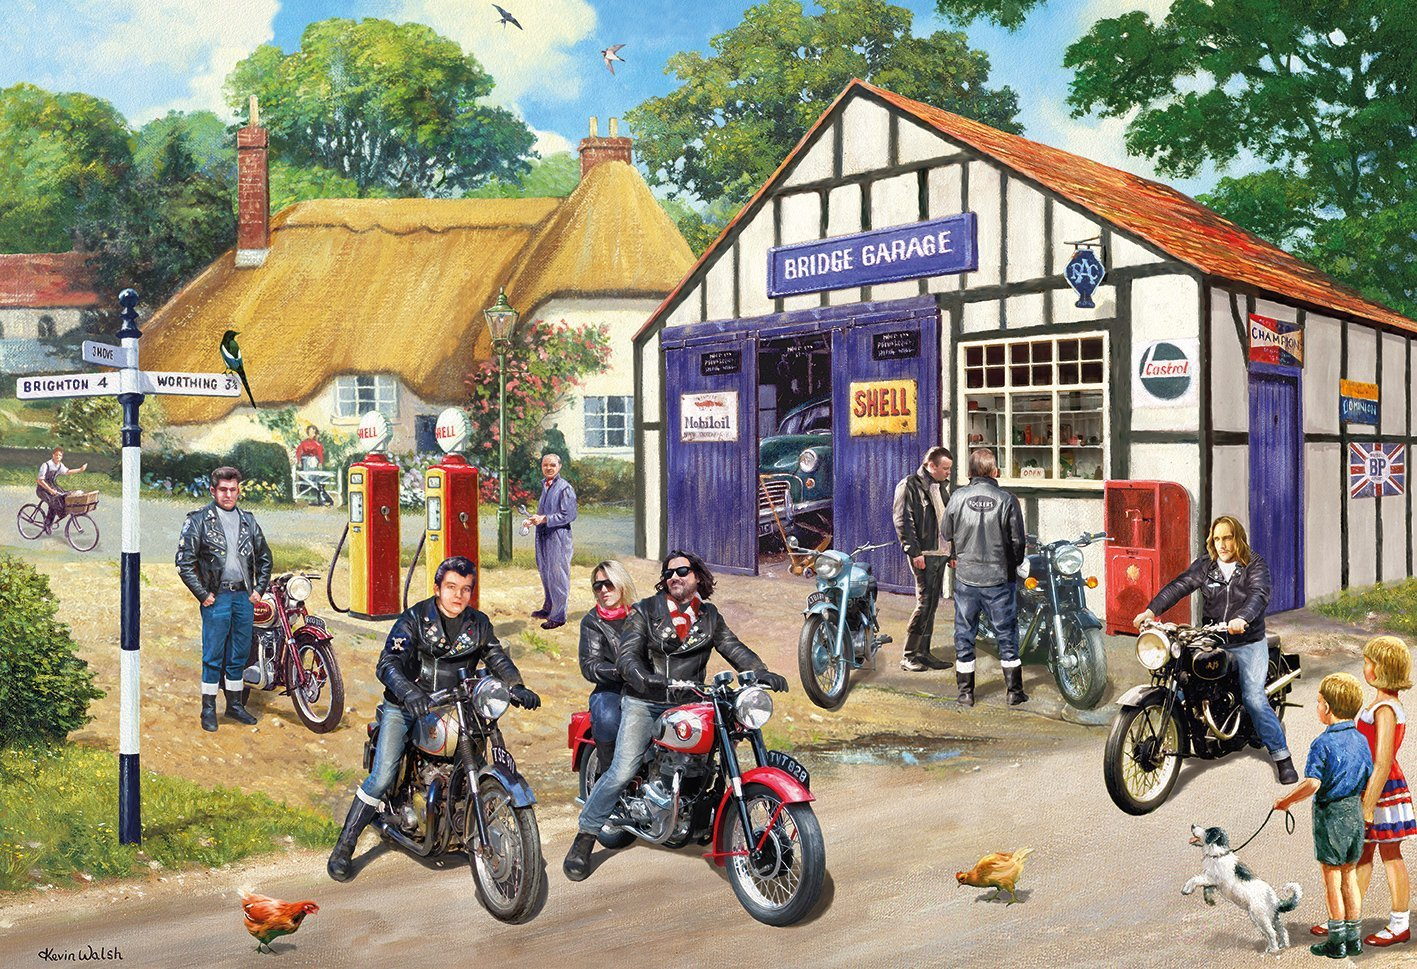 2-puzzles-mods-and-rockers